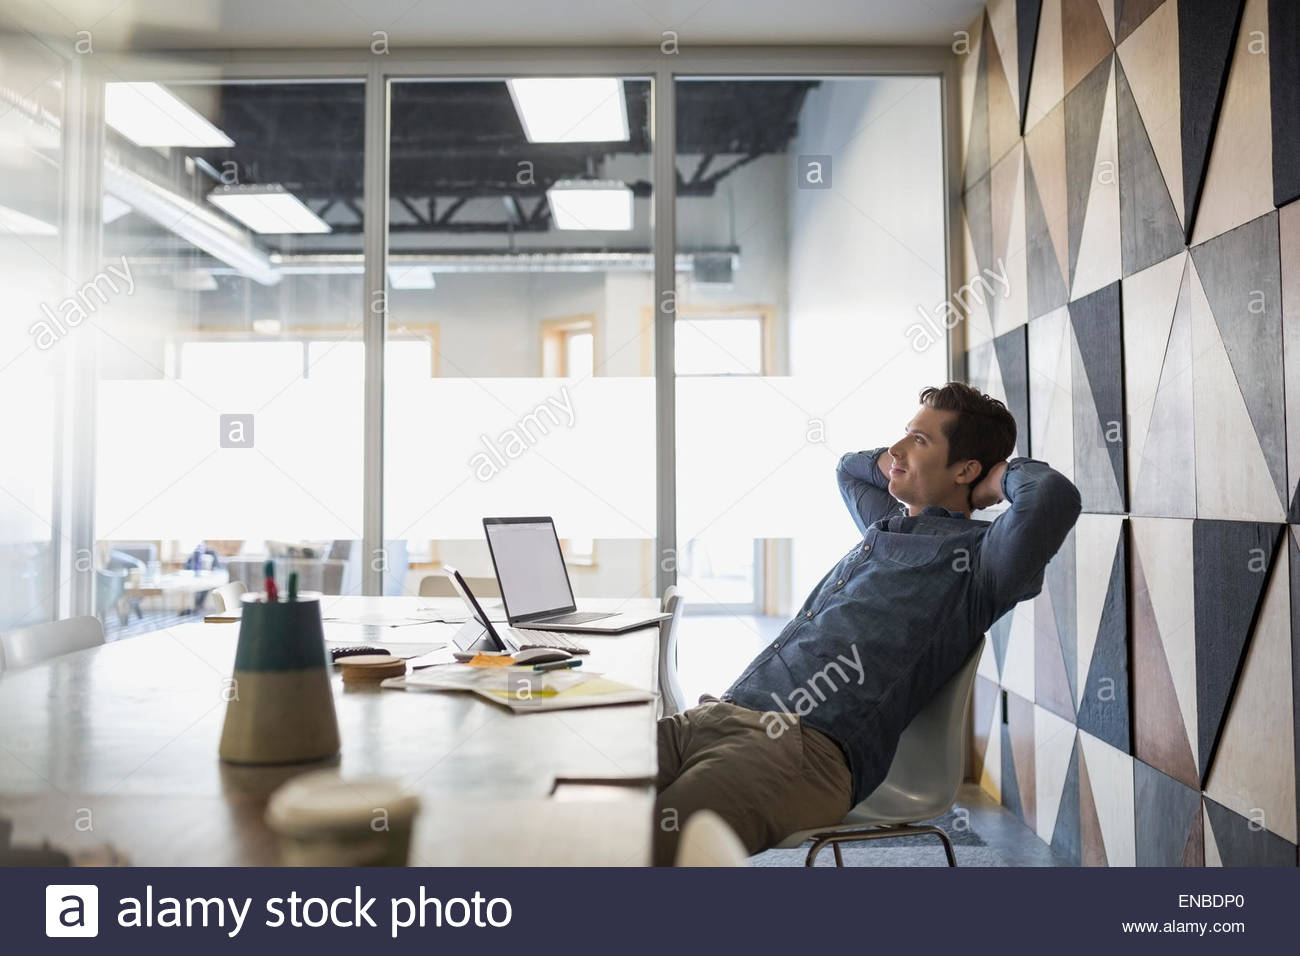 Casual businessman relaxing hands behind head conference room - Stock Image